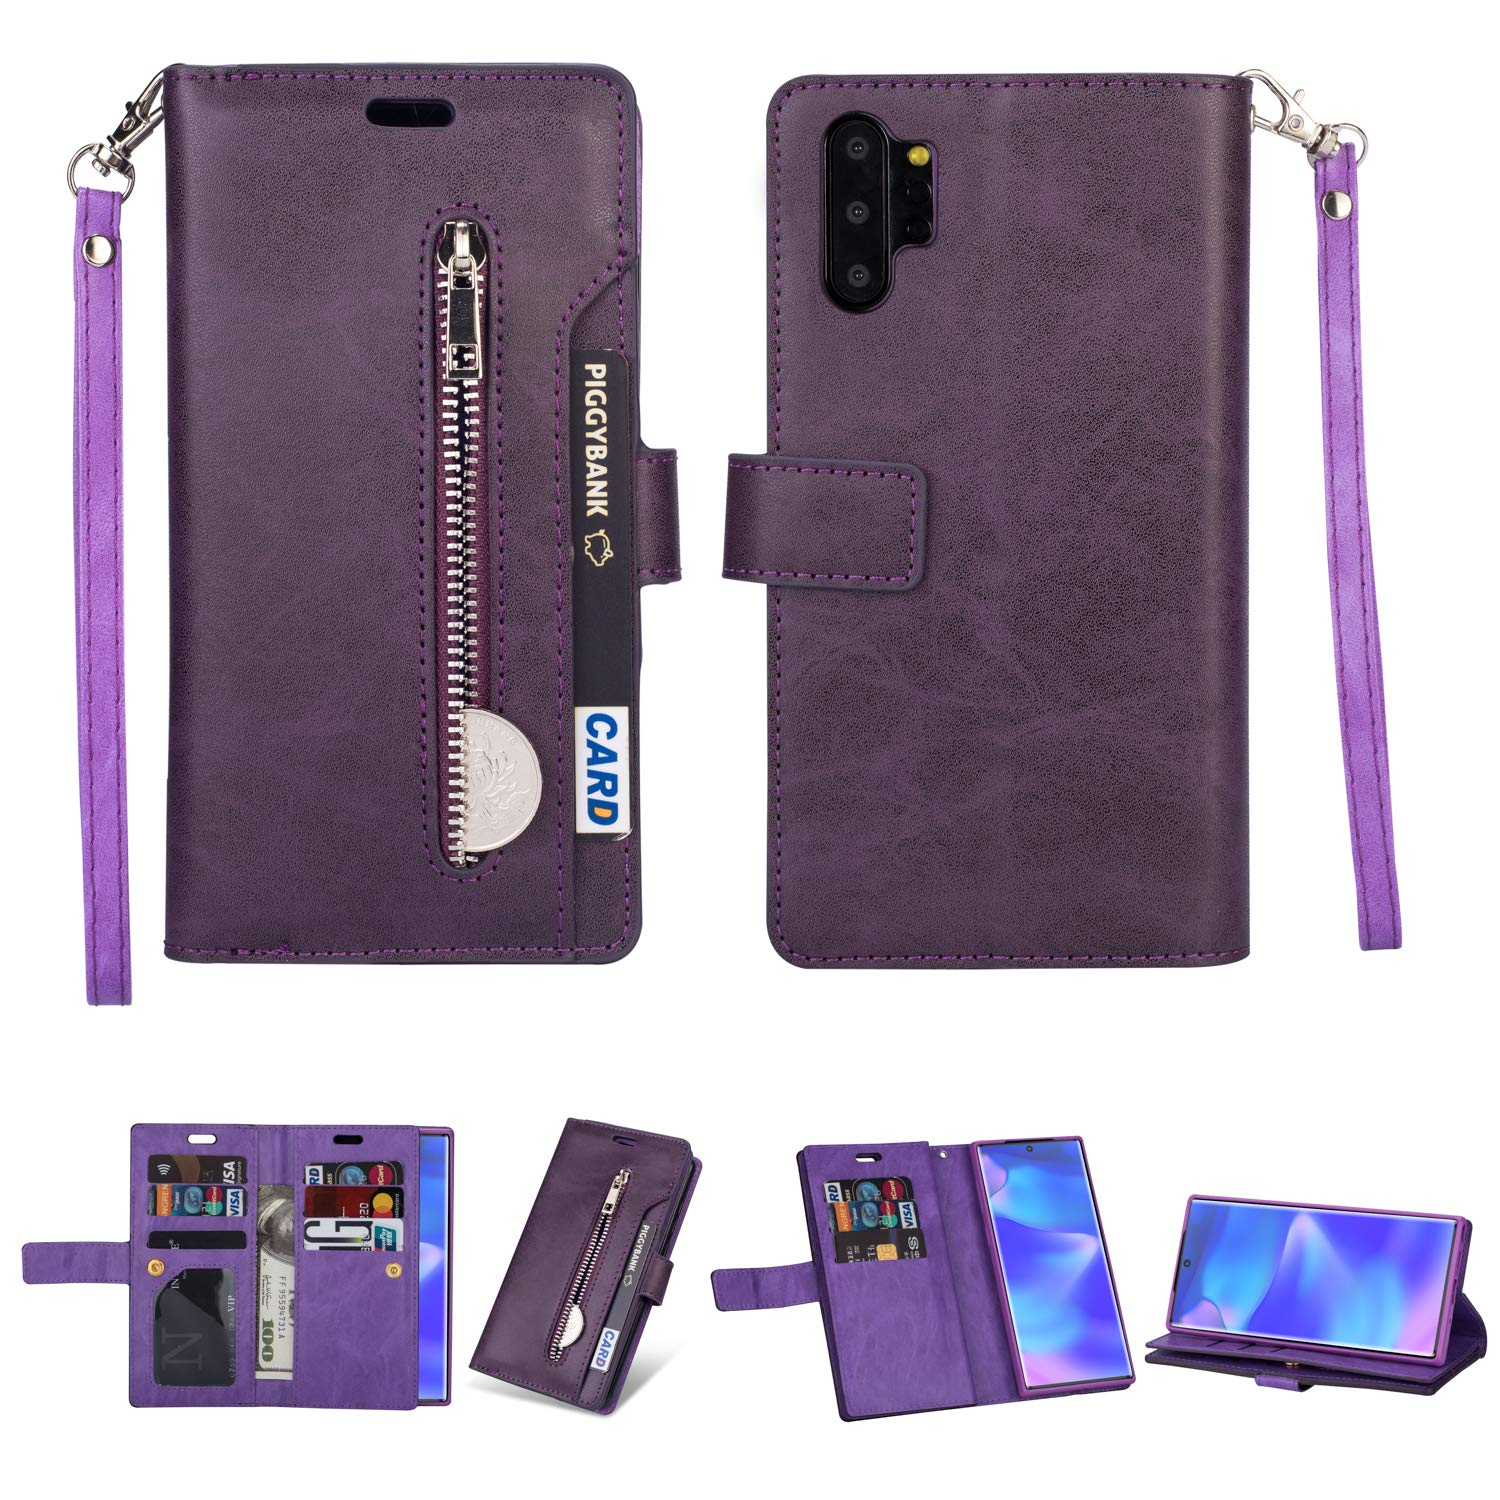 DAMONDY for Samsung Note 10 Plus Case,Zipper Stand Wallet Purse 9 Card Slot ID Holders Design Flip Cover Pocket Purse Leather Magnetic Protective for Samsung Galaxy Note 10 Plus-Purple